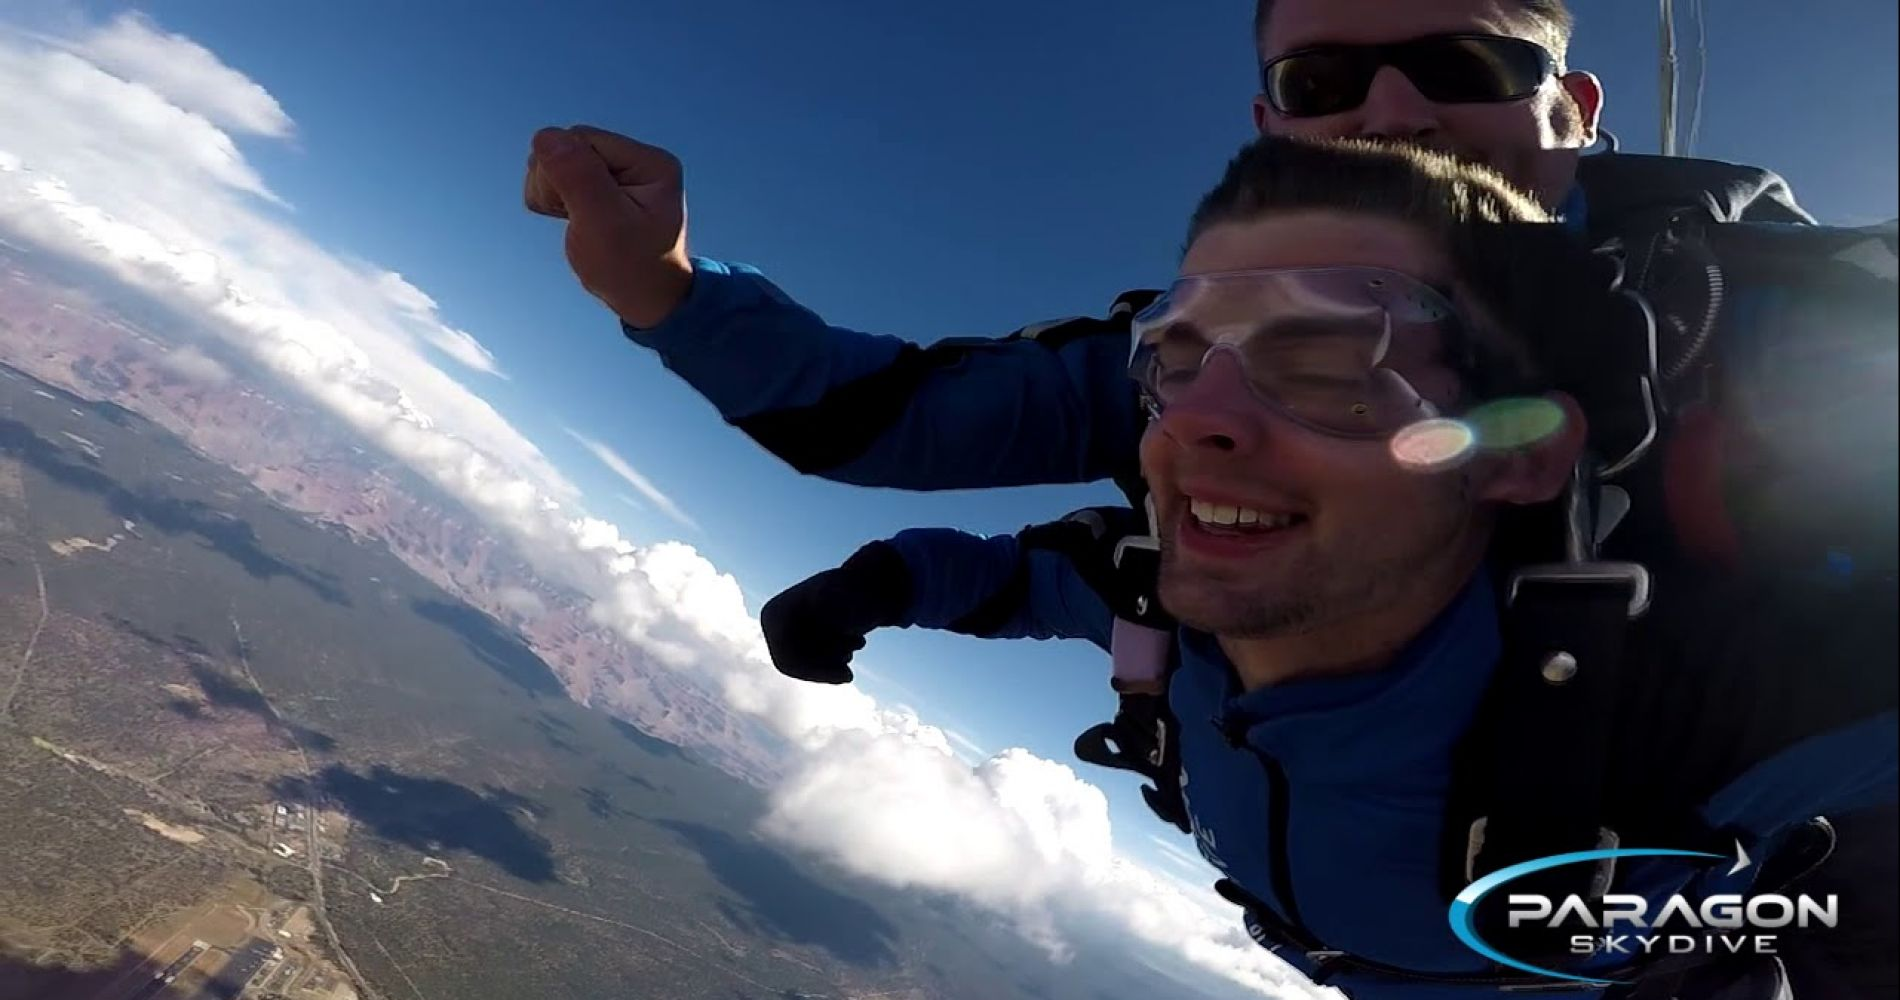 Stunning tandem skydive in Grand Canyon